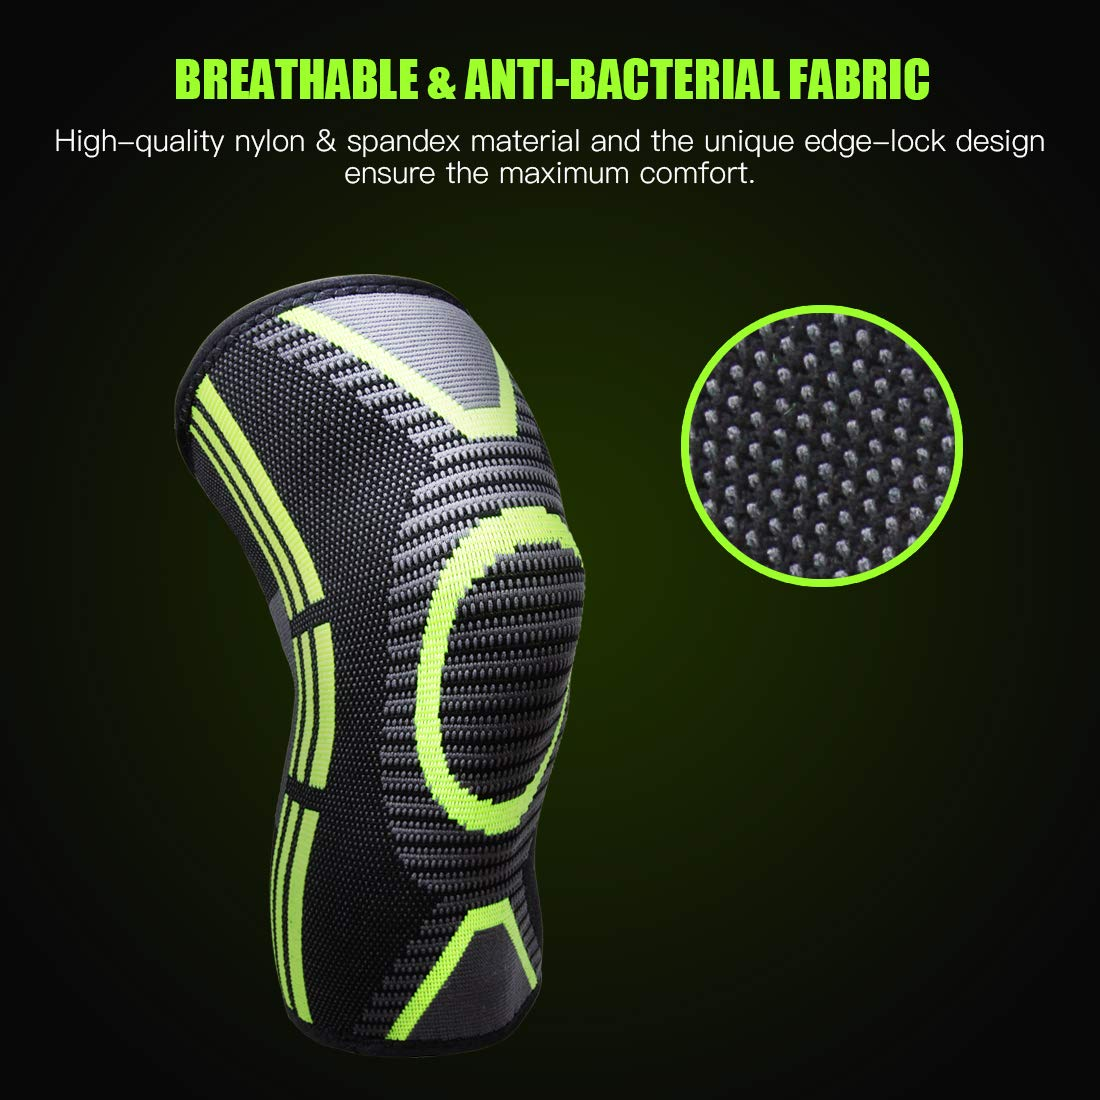 Crossfit Exercise Sports Pads IBAWLY Sports Compression Knee Brace for Men Women Jogging 1 Pair Non-Slip Athletic Knee Sleeves for Running Basketball